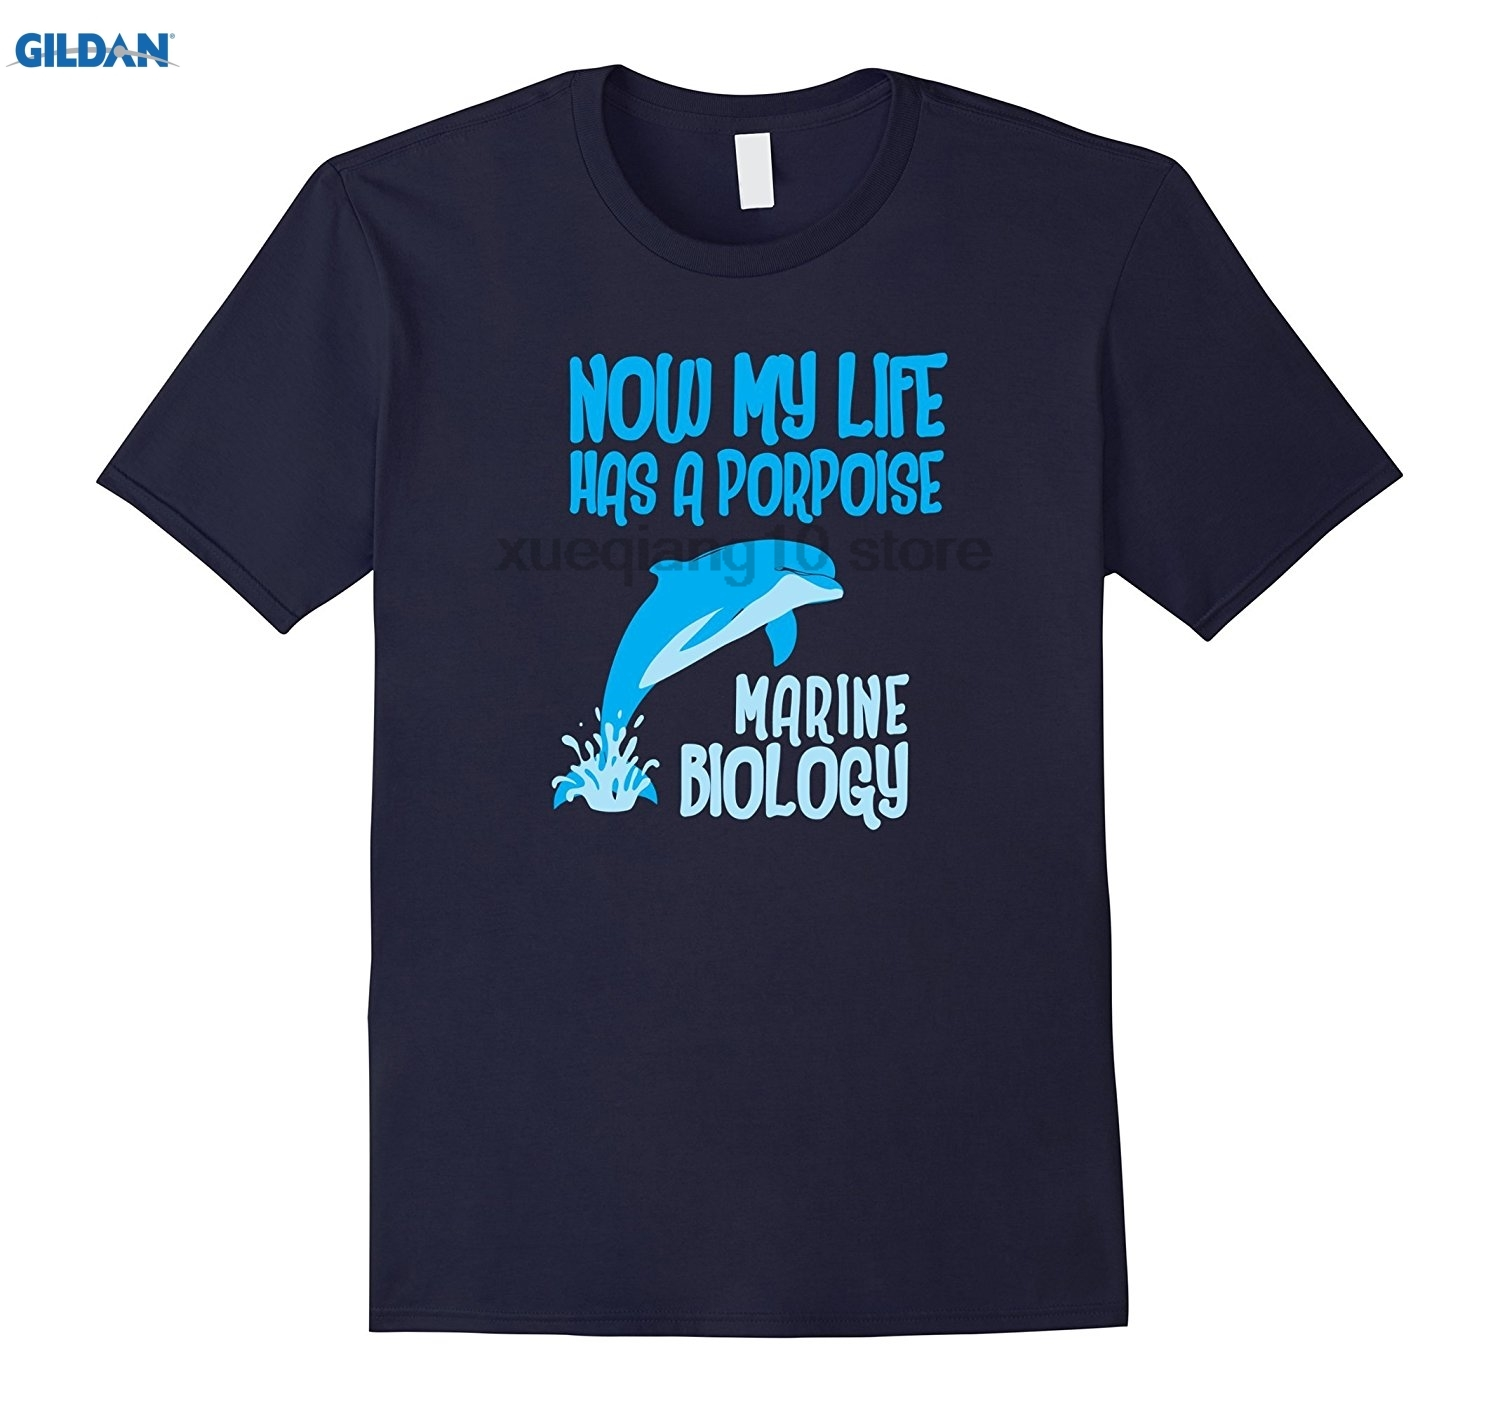 GILDAN GILDAN Now My Life Has A Porpoise Marine Biology T Shirt